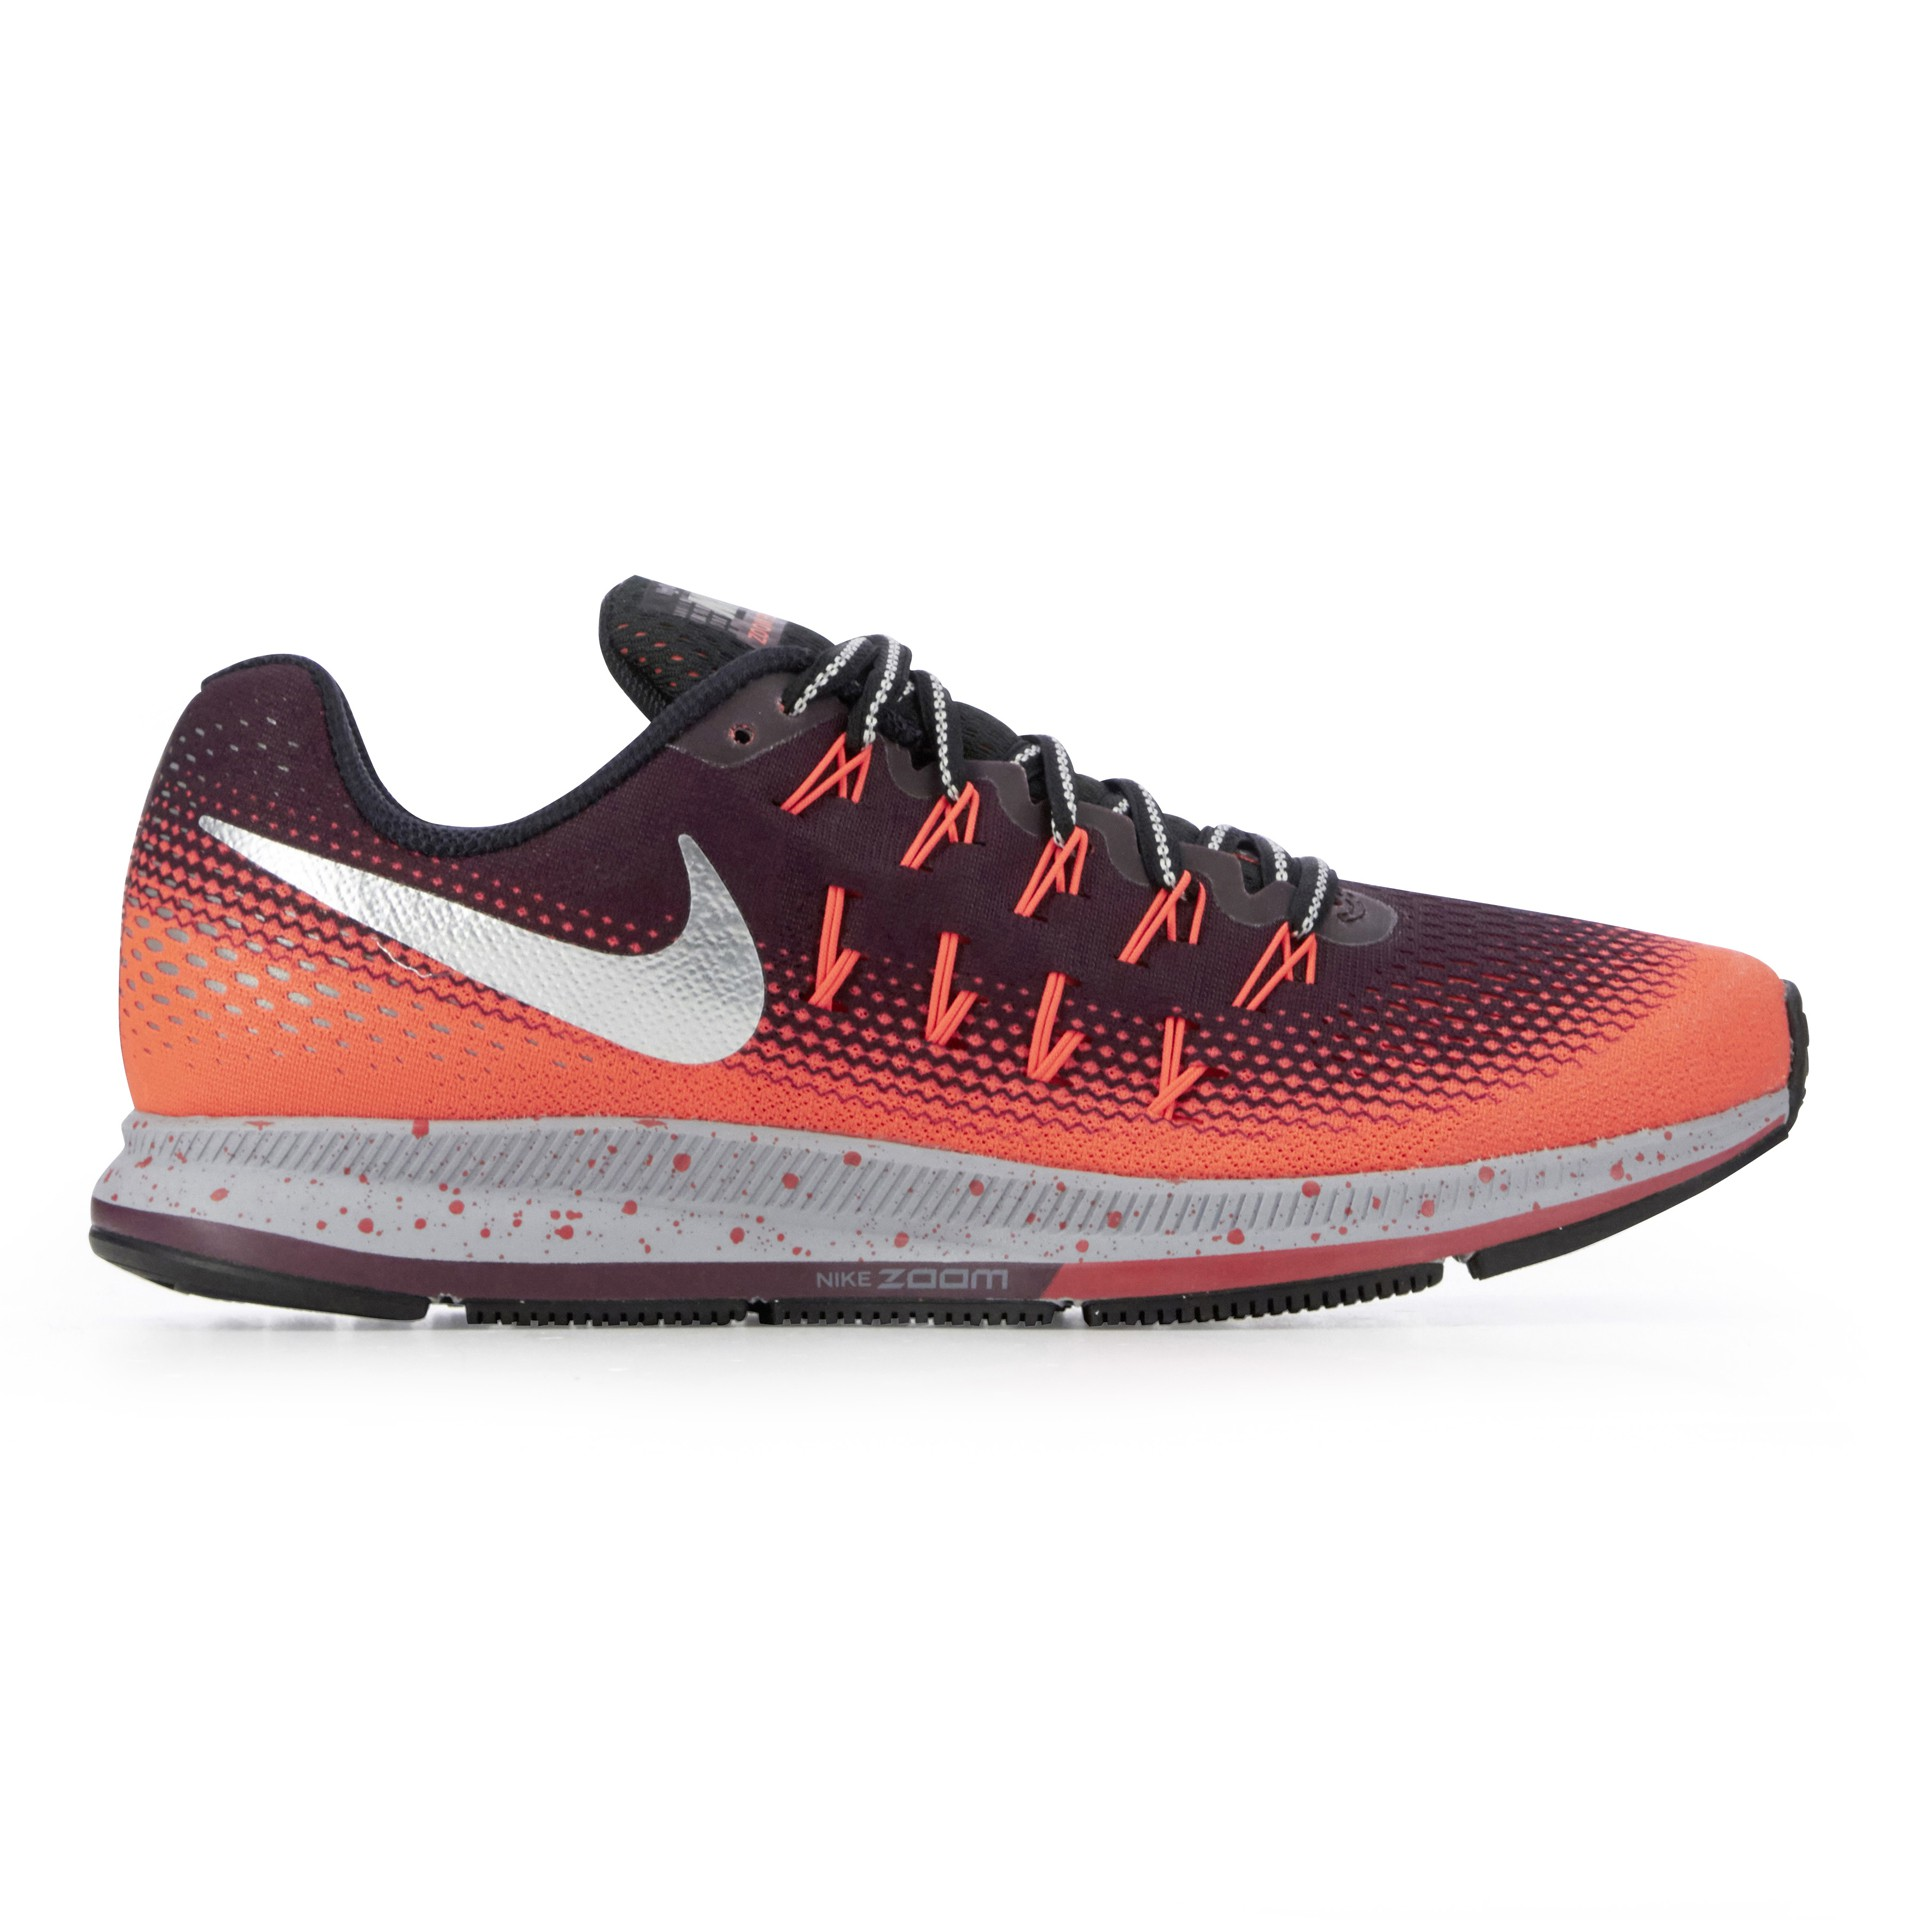 meilleures baskets 9c76e 39a1e nike air zoom pegasus 33 shield rouge